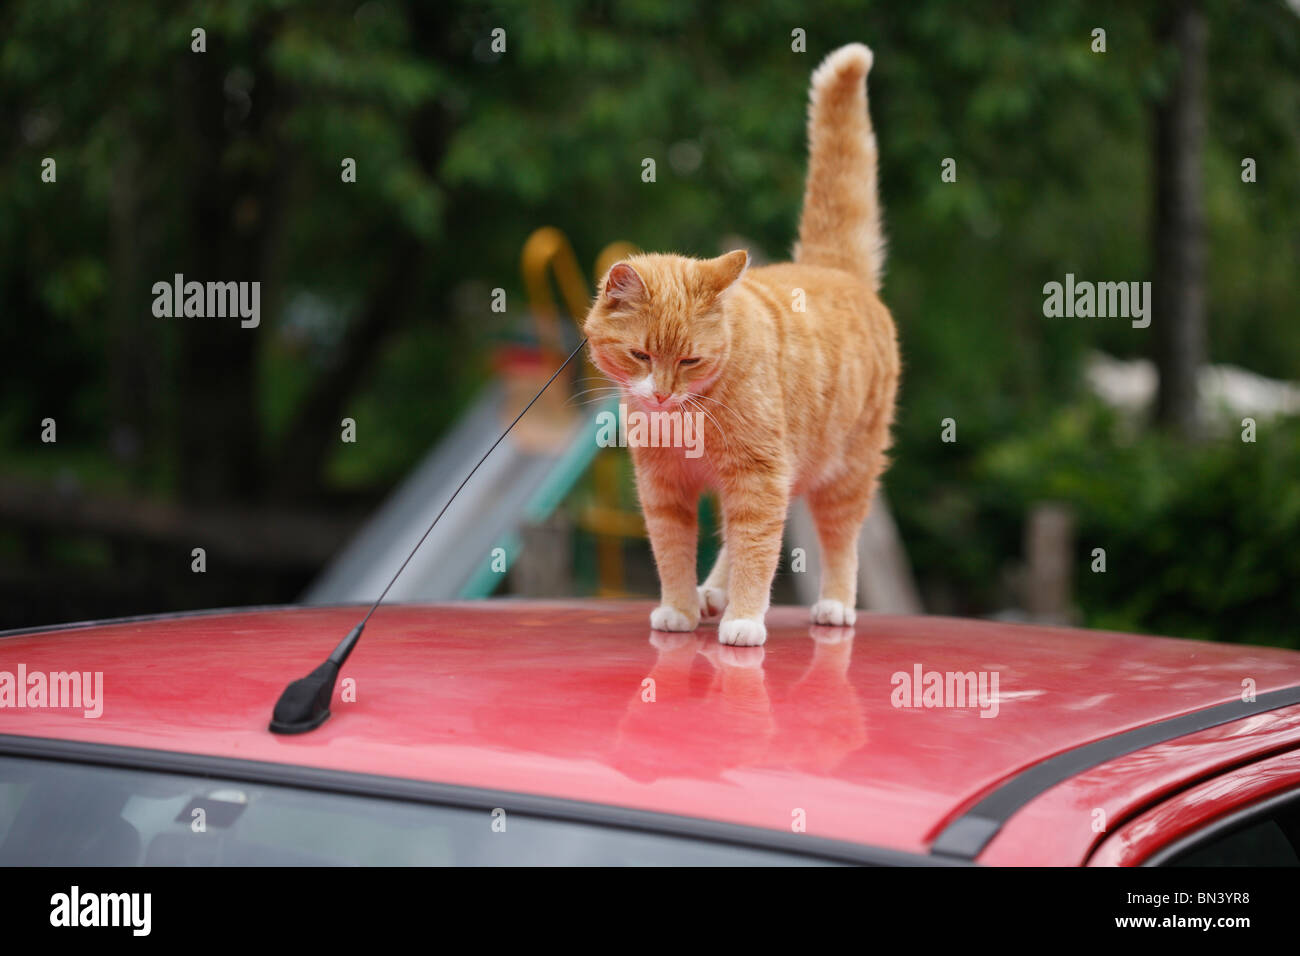 domestic cat, house cat, European Shorthair (Felis silvestris f. catus), red tomcat on a car roof scratching at - Stock Image